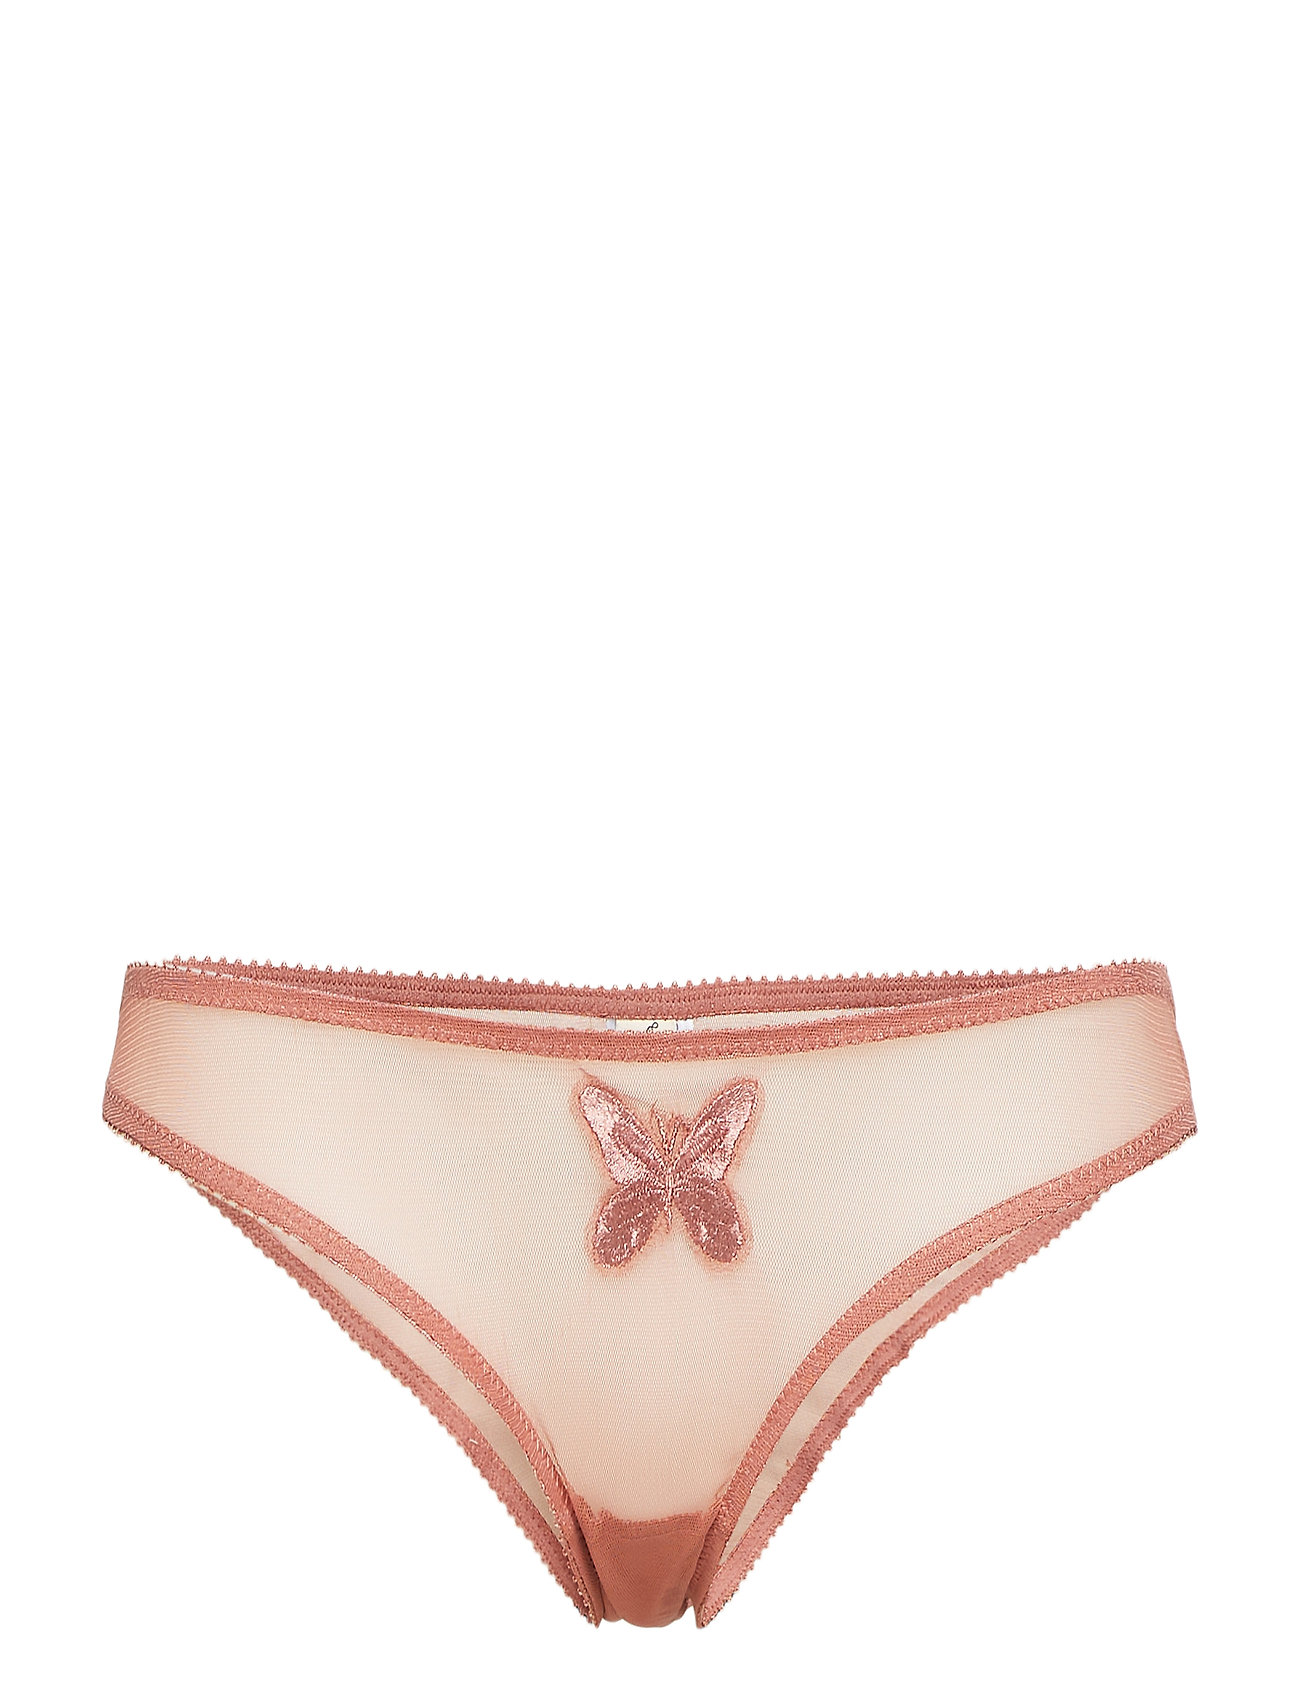 Underprotection Betty briefs - BERRY